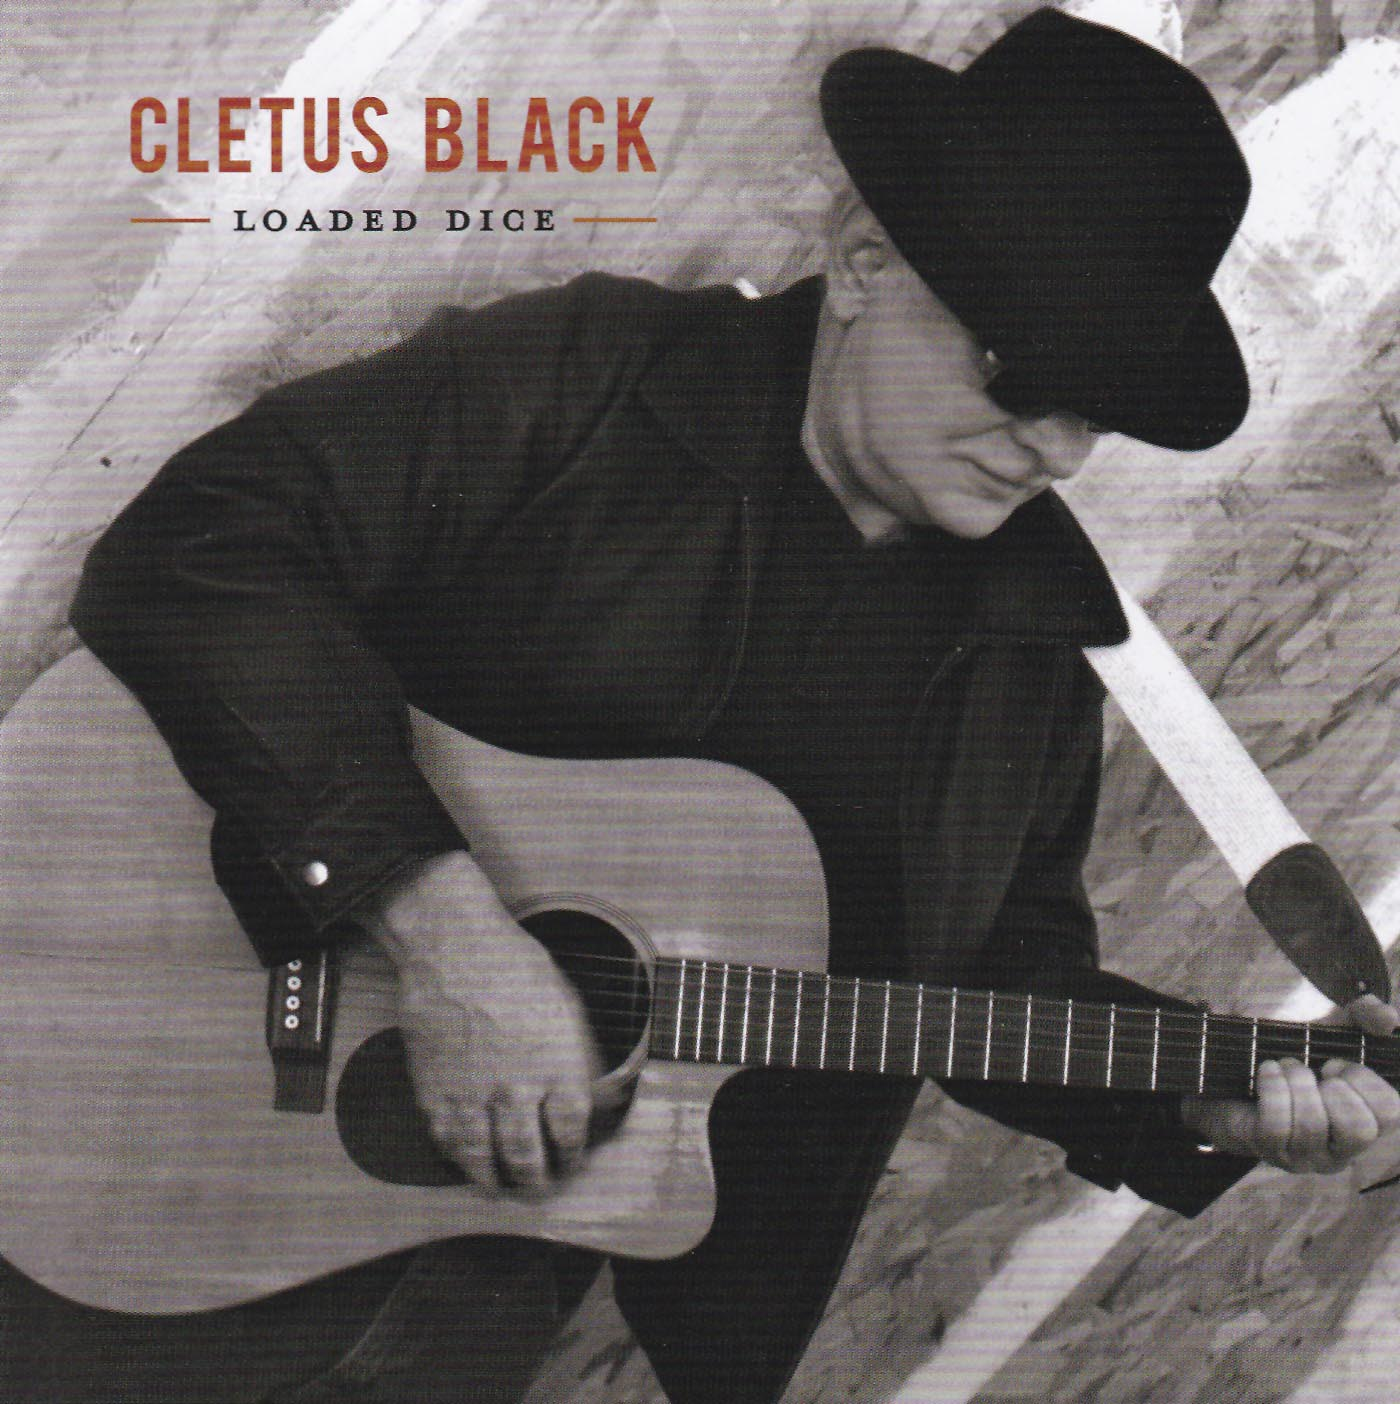 Cletus Black is Charlie Saber's Guest Tuesday June 6